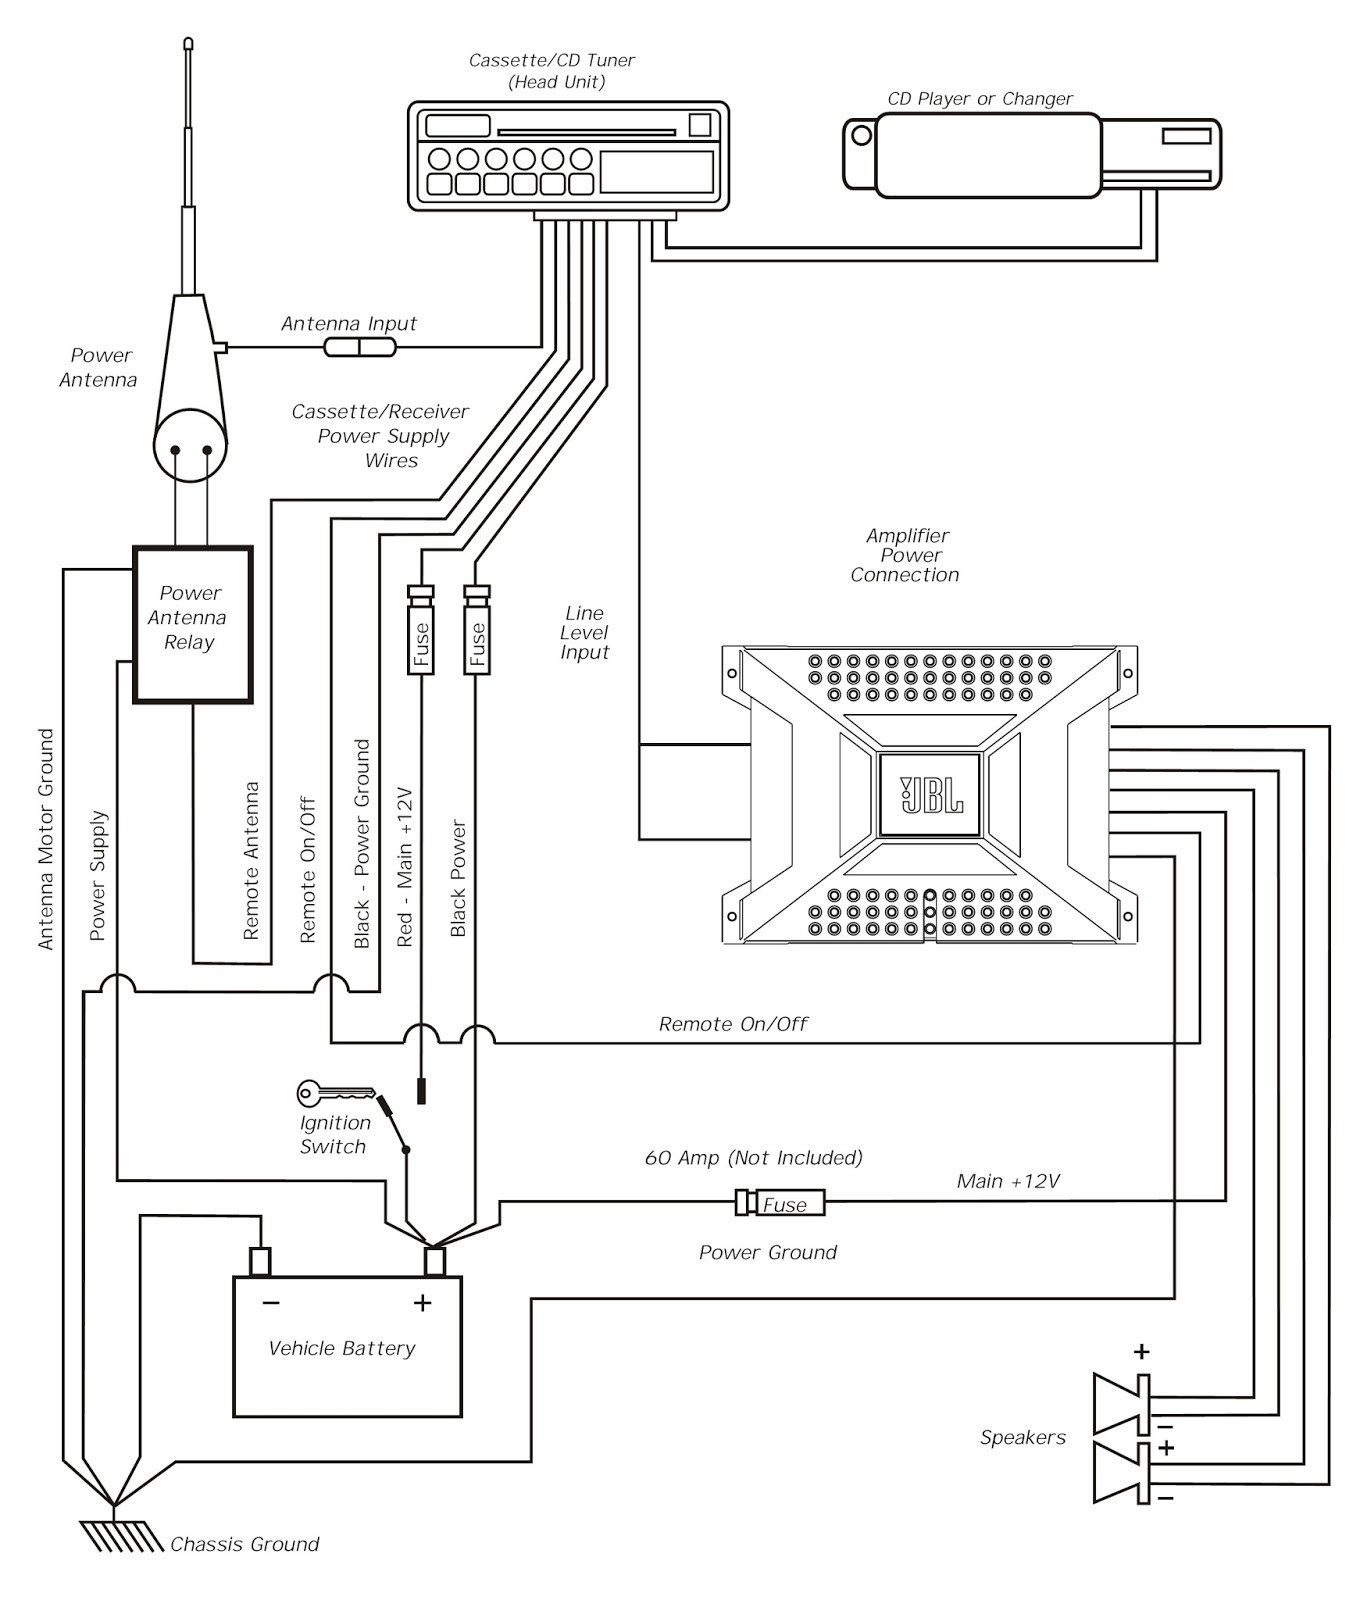 car audio wiring diagram Collection-2003 Audi A4 Radio Wiring Diagram Valid  Car Radio Harness